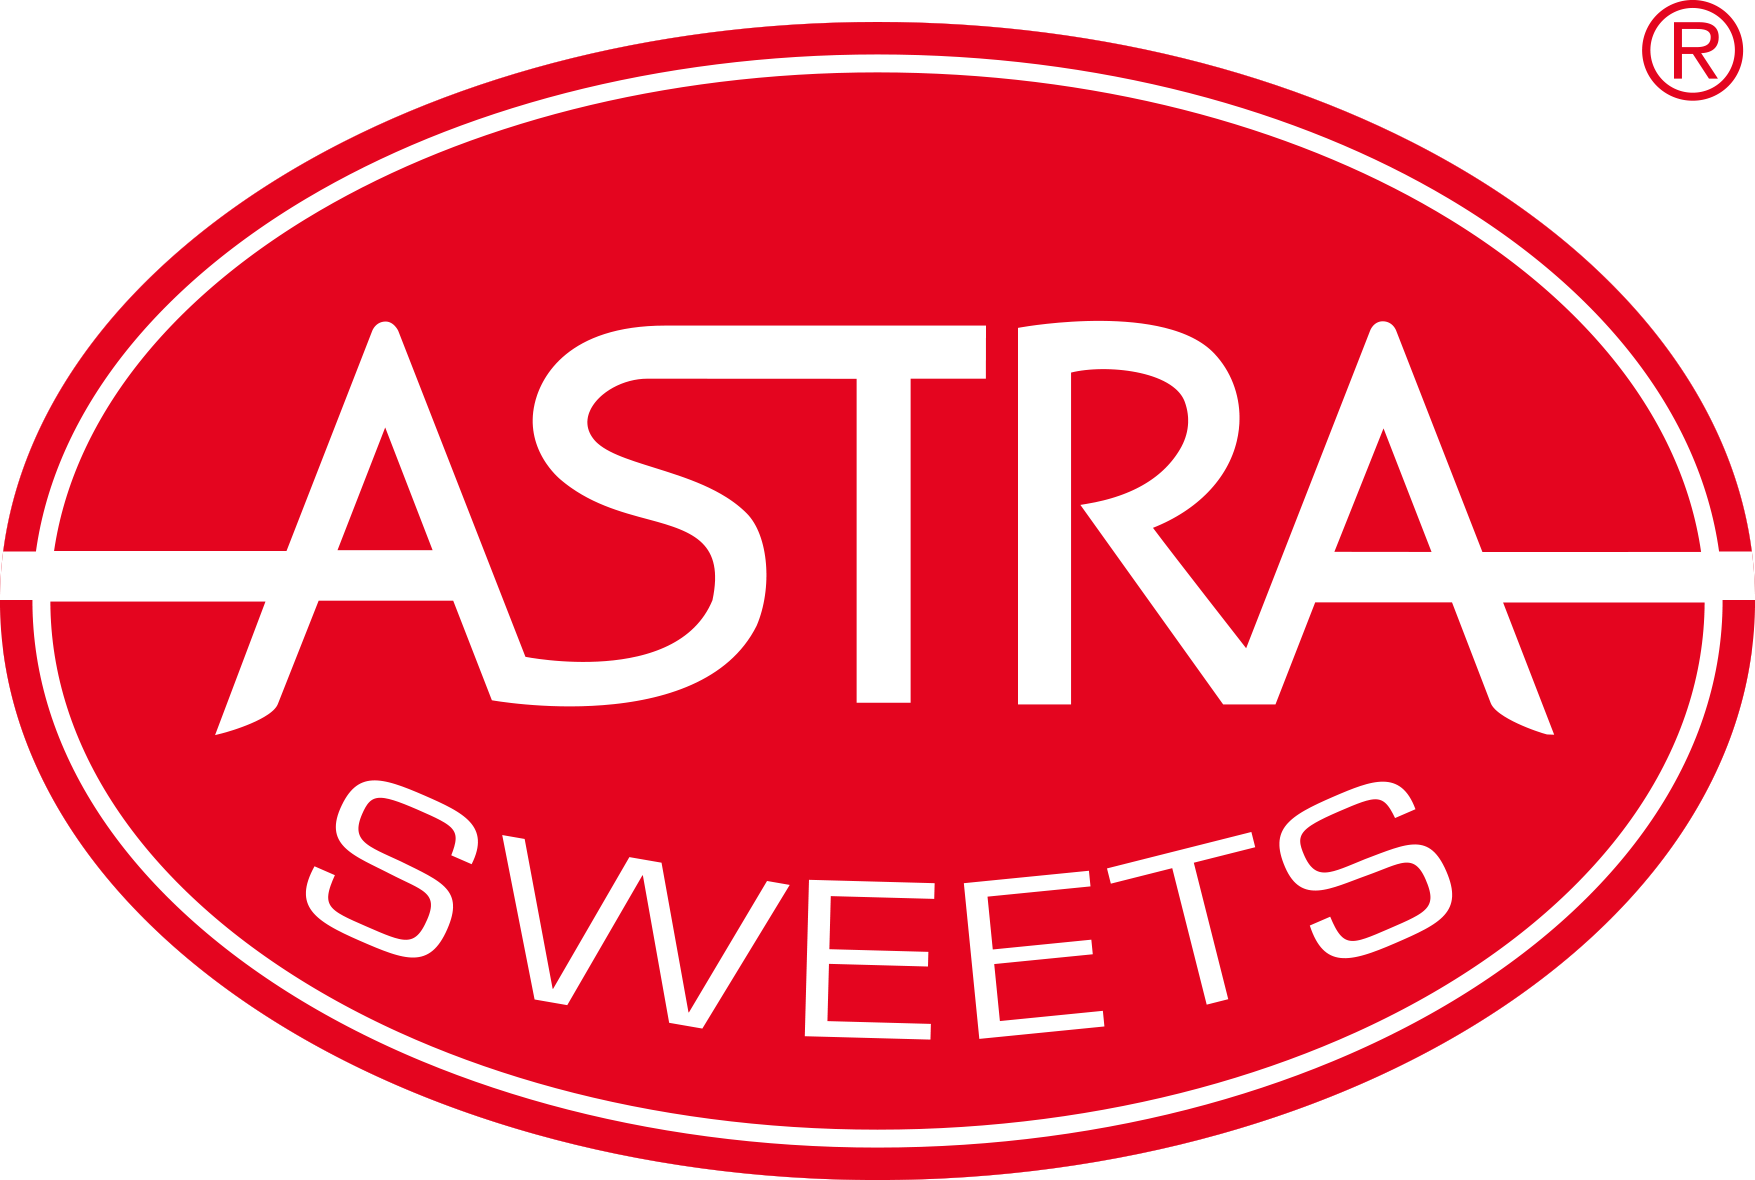 Logo https://www.food-dynamics.nl/wp-content/uploads/2020/05/Food-Dynamics-referentie-logo-Astra-Sweets-2.png